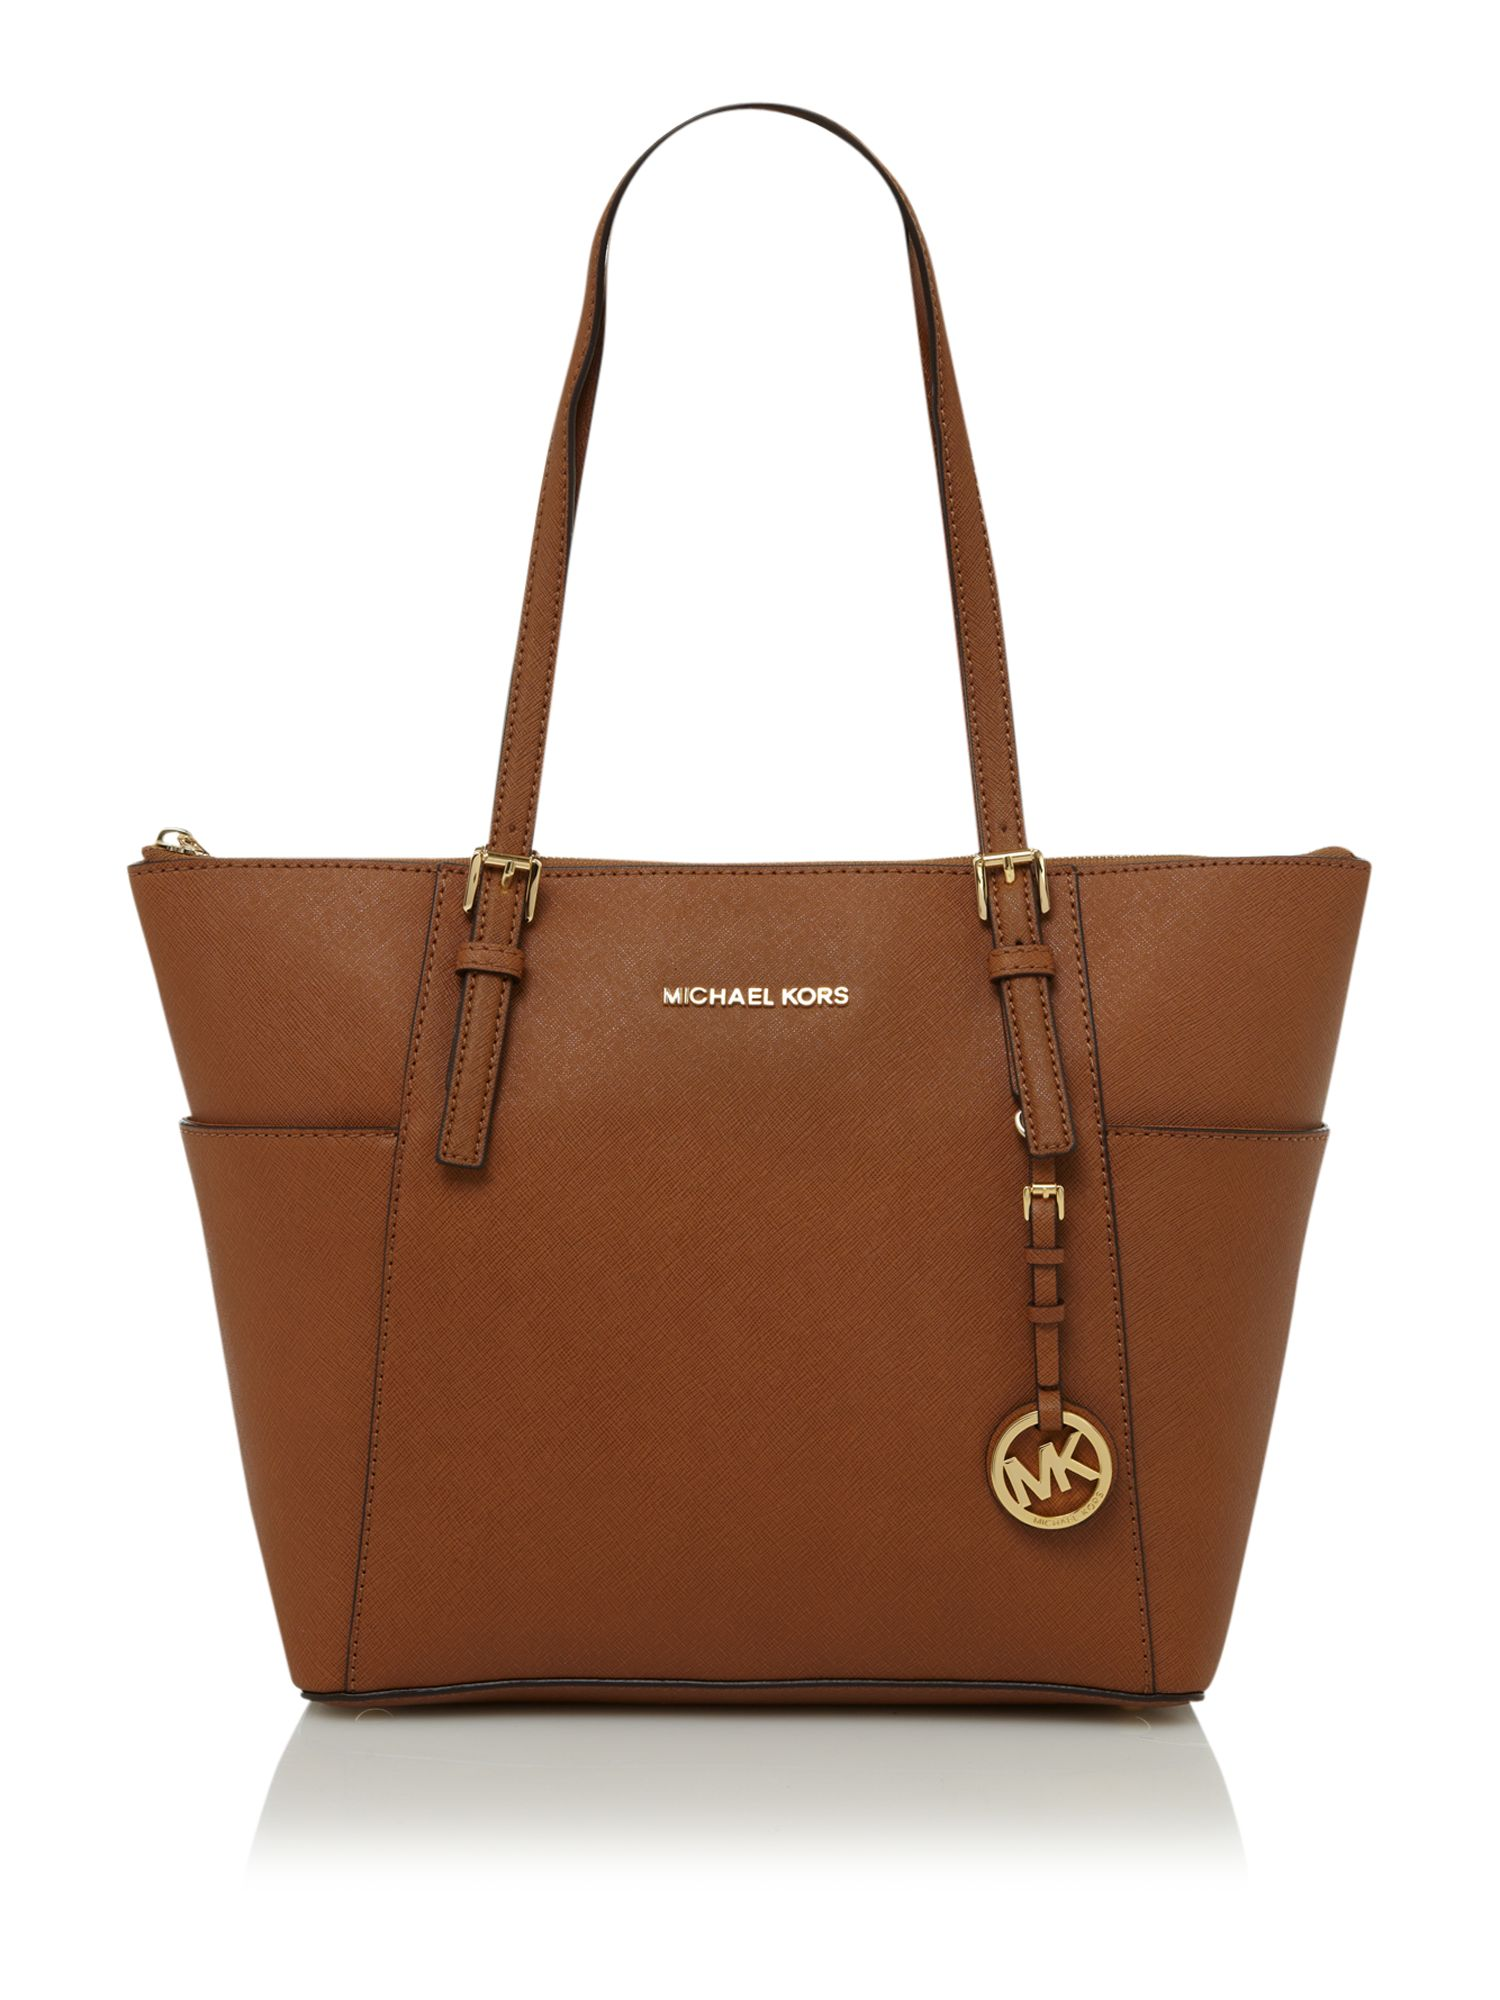 Michael Kors Bags Bluewater Small Riley Bag Peanut Color